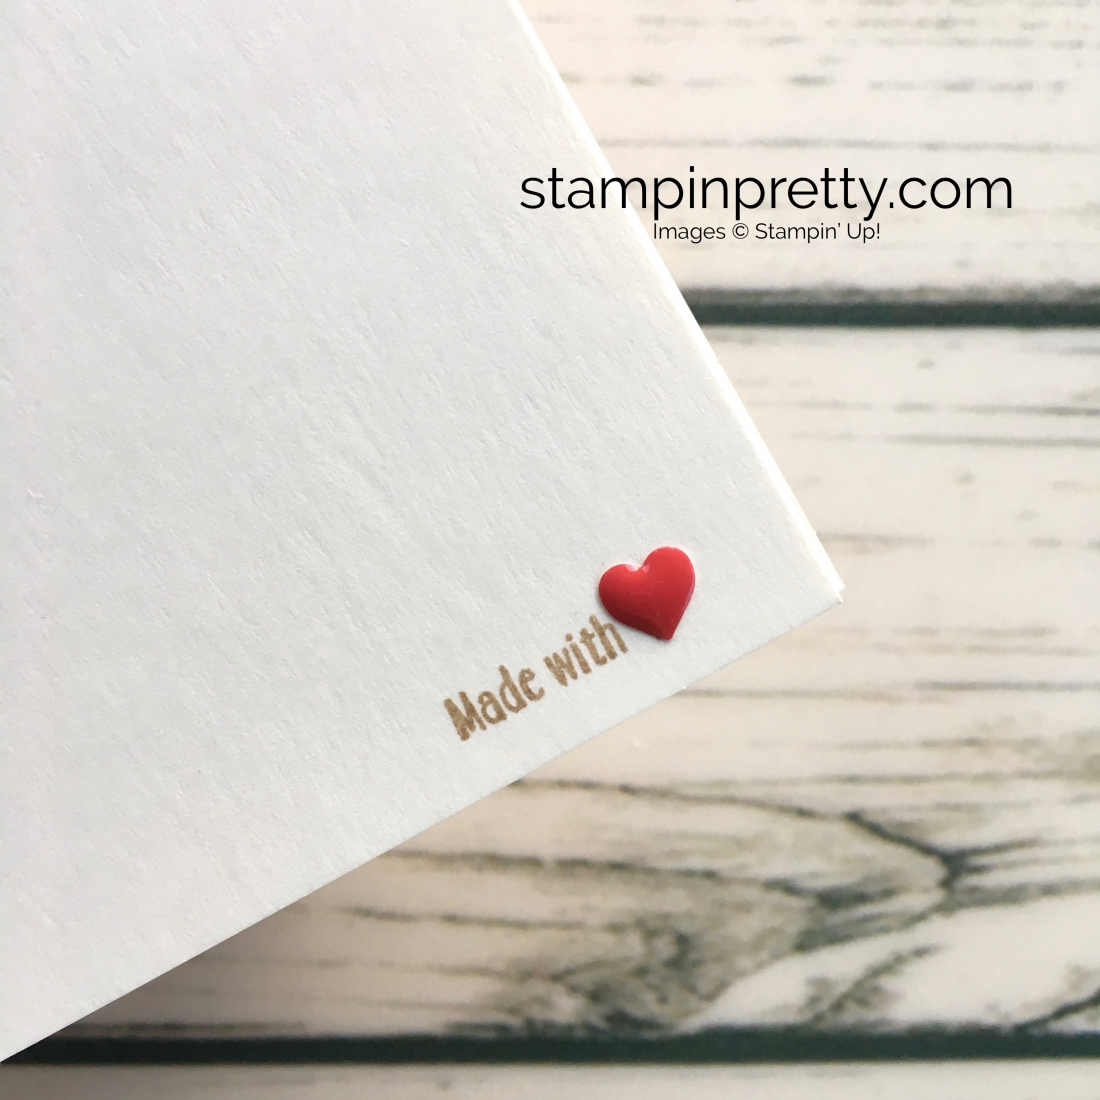 Learn how to create a mothers day card or valentine using stampin learn how to create a mothers day card or valentine using stampin up apron of love mary fish stampinup kristyandbryce Images